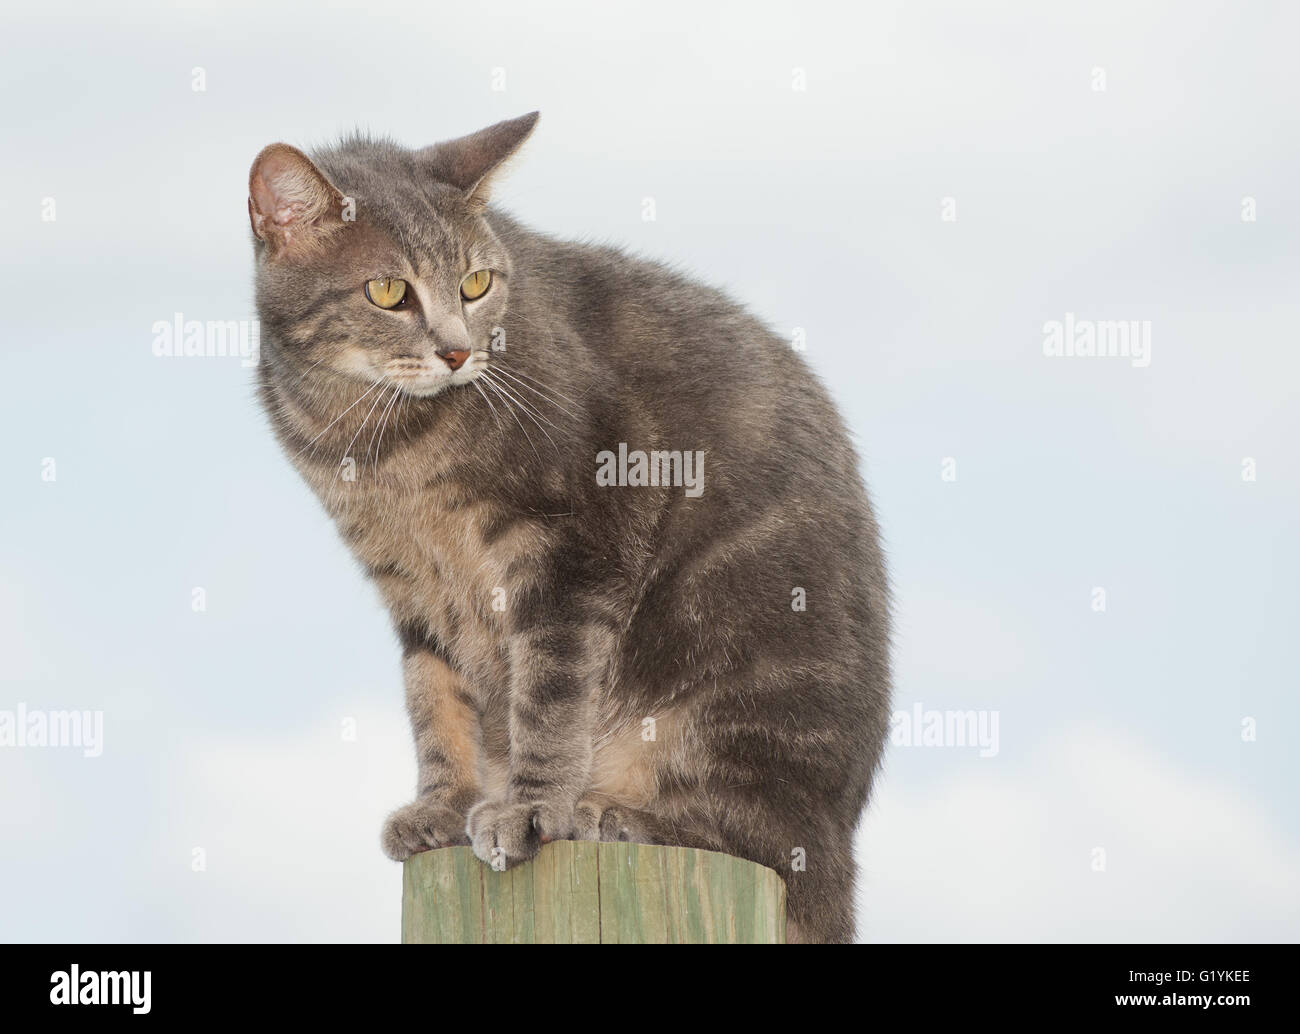 Unhappy blue tabby cat looking worried, sitting on top of a high post against cloudy sky - Stock Image